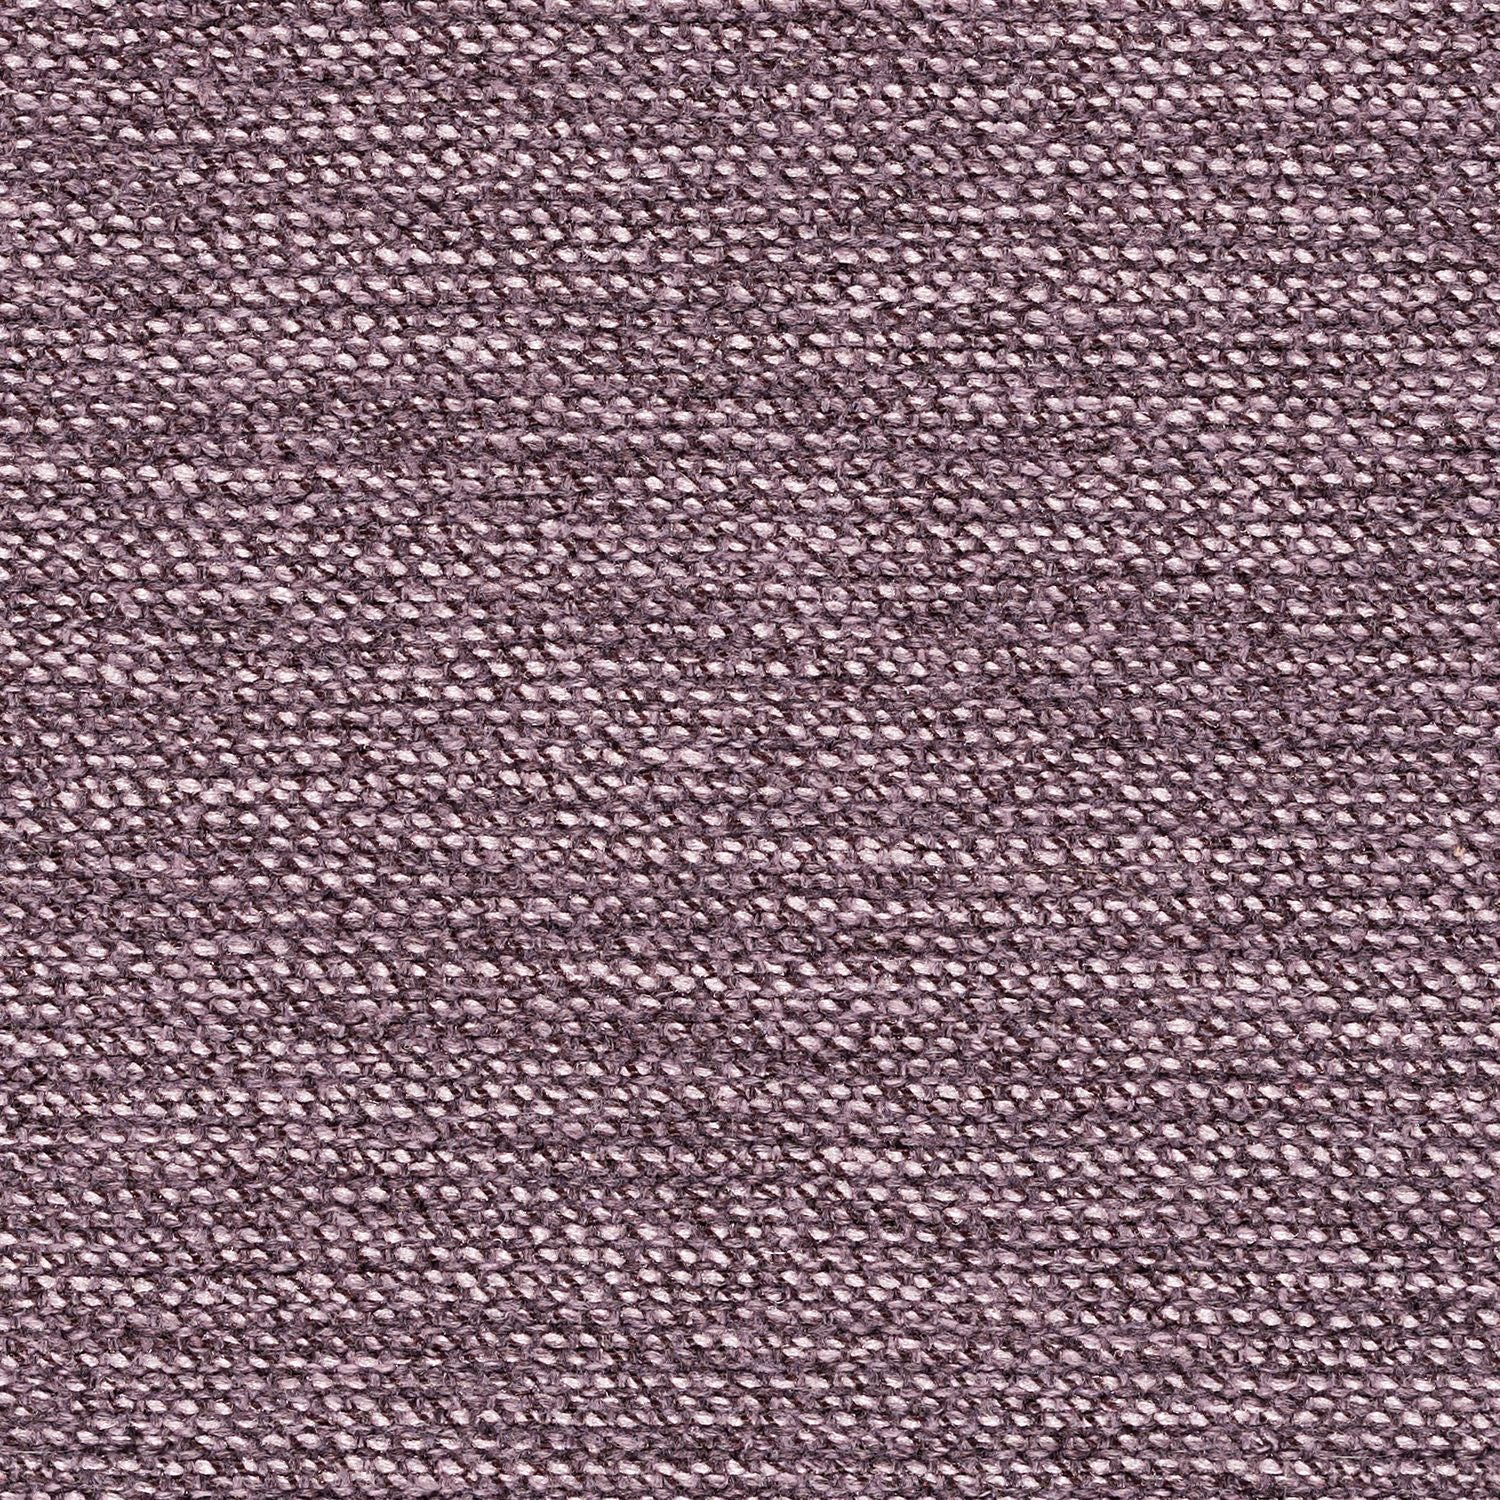 Superspun - Skein - 4064 - 11